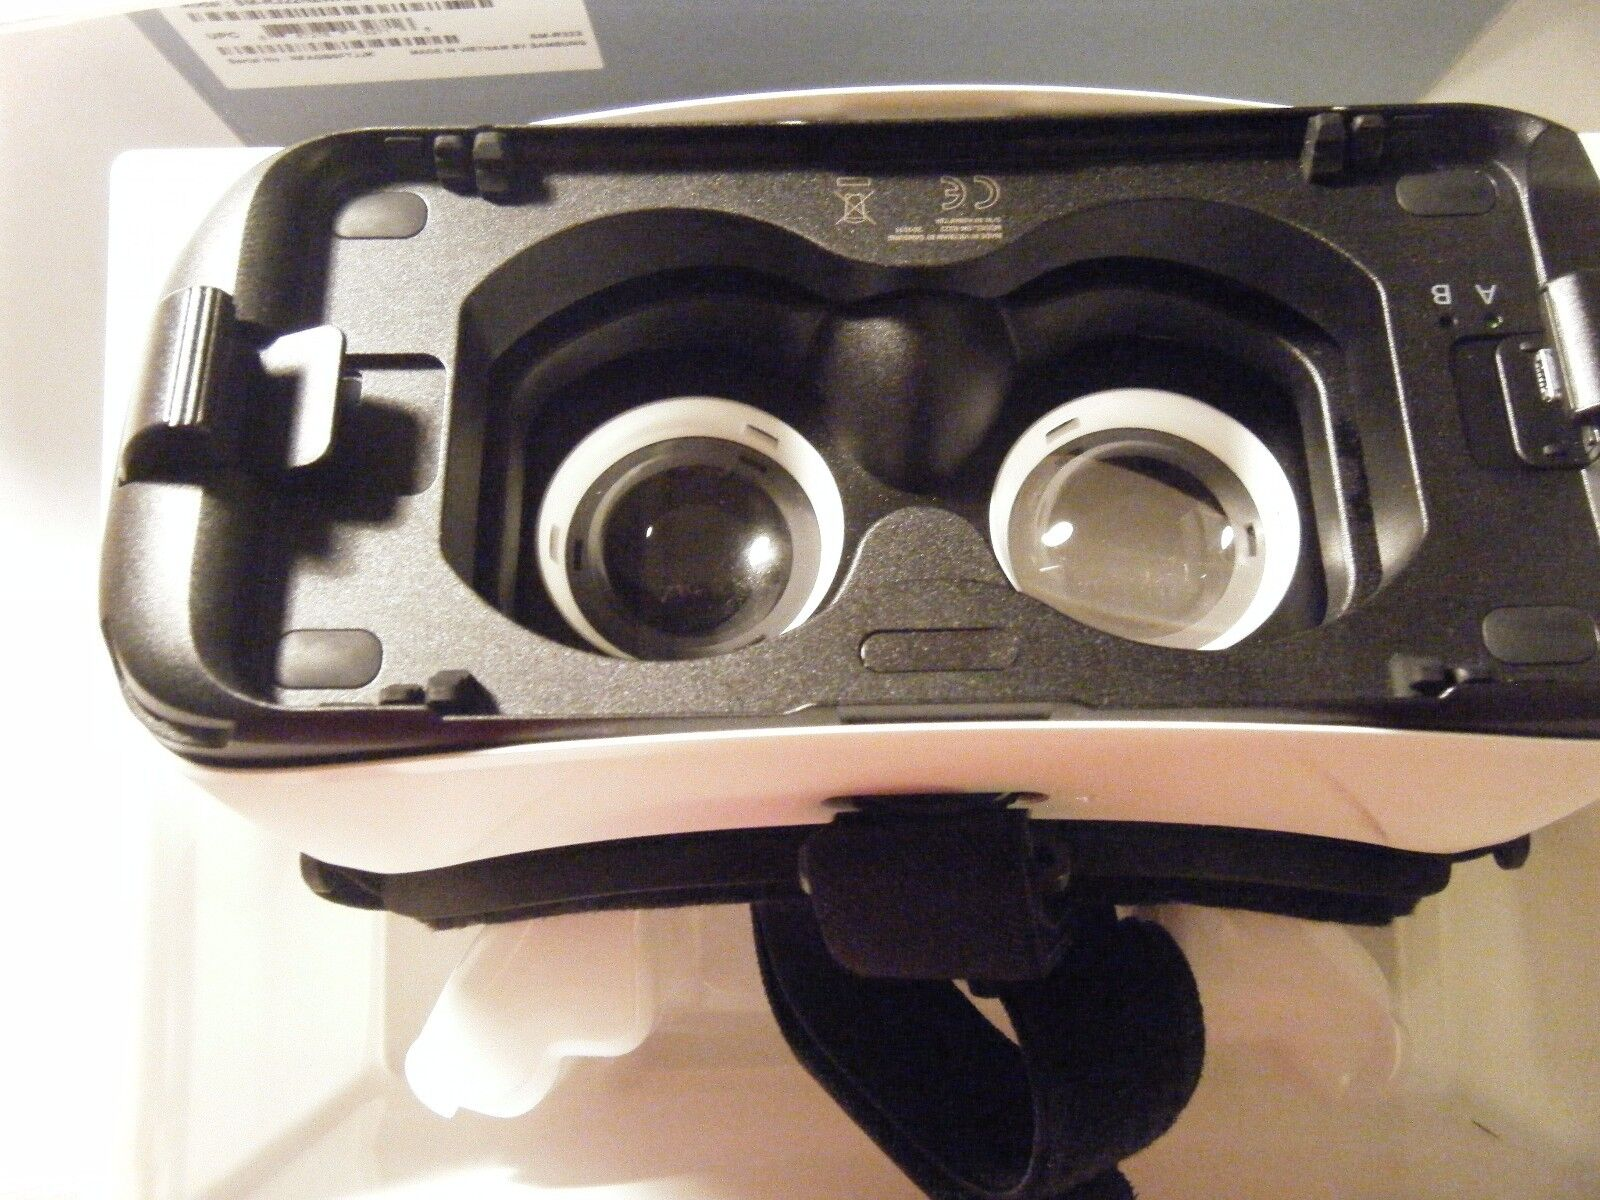 Samsung Gear VR Virtual Reality Headset for Samsung Galaxy Note 5 S6 S7 Edge OEM